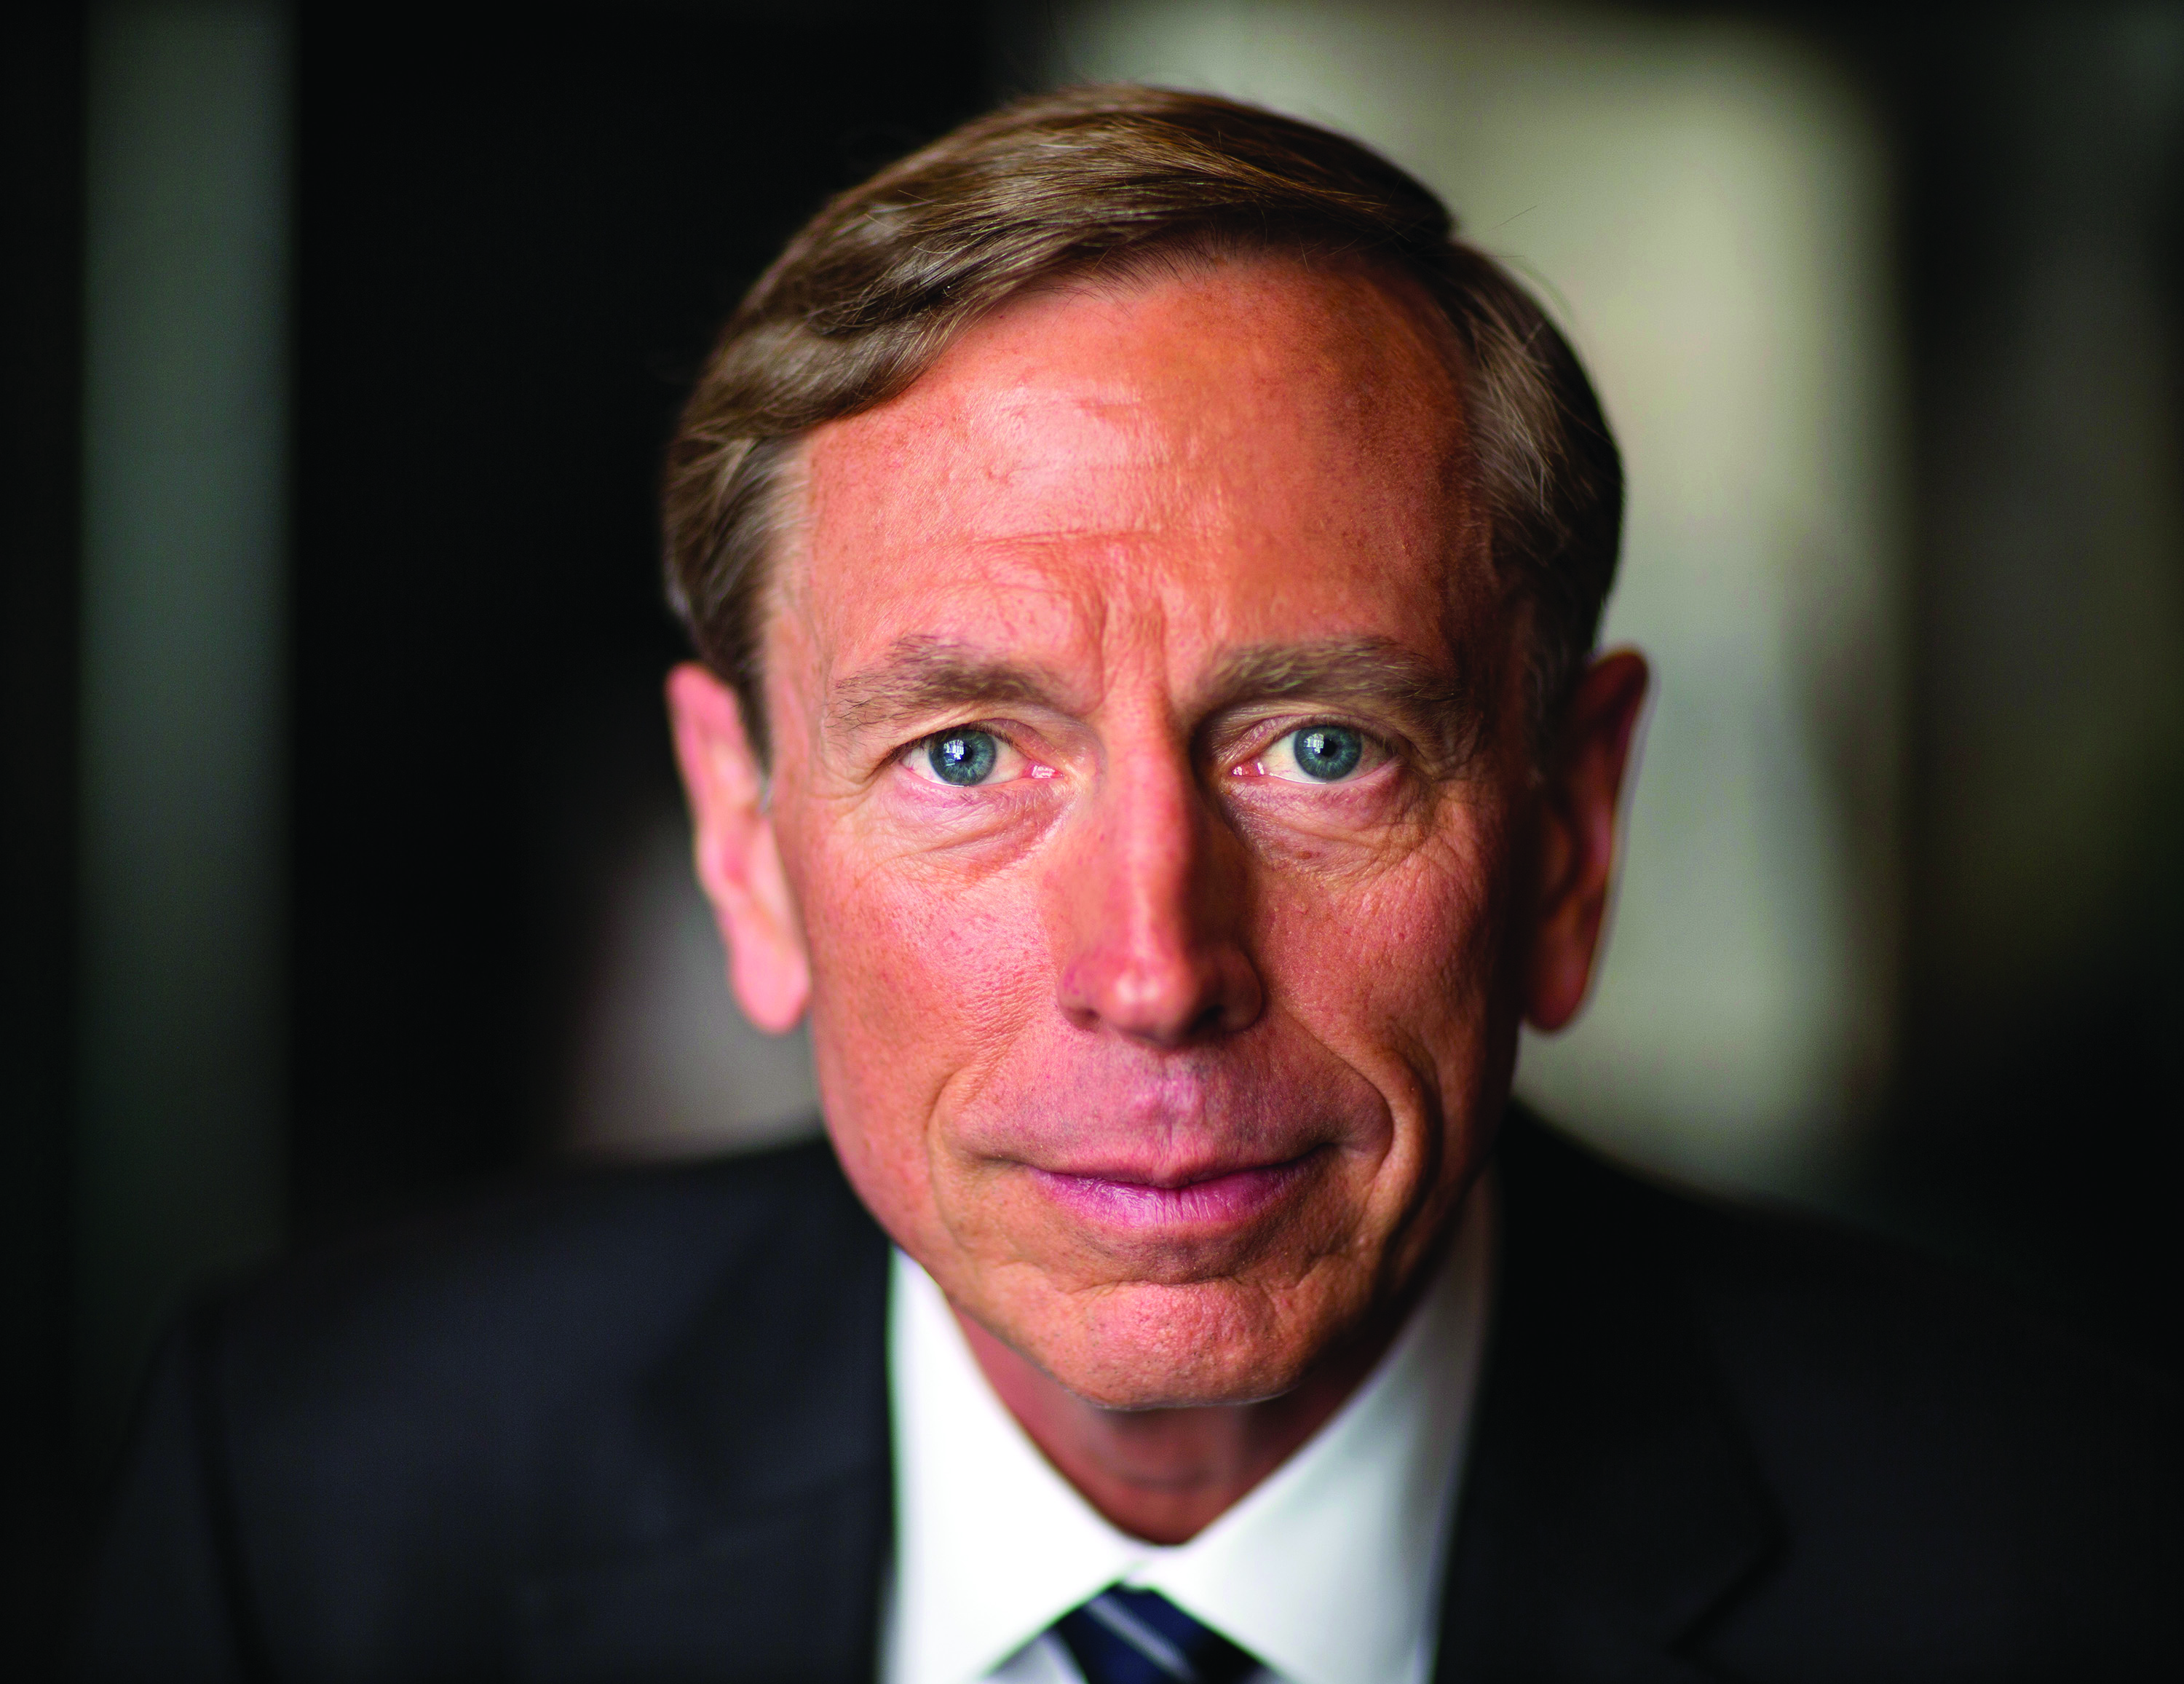 NEW YORK-- JULY 22:  Former CIA Director GEN David Petraeus during interview for CBS/Showtime documentary on CIA directors, New York, New York, July 22, 2015. (Photo David Hume Kennerly/GettyImages)